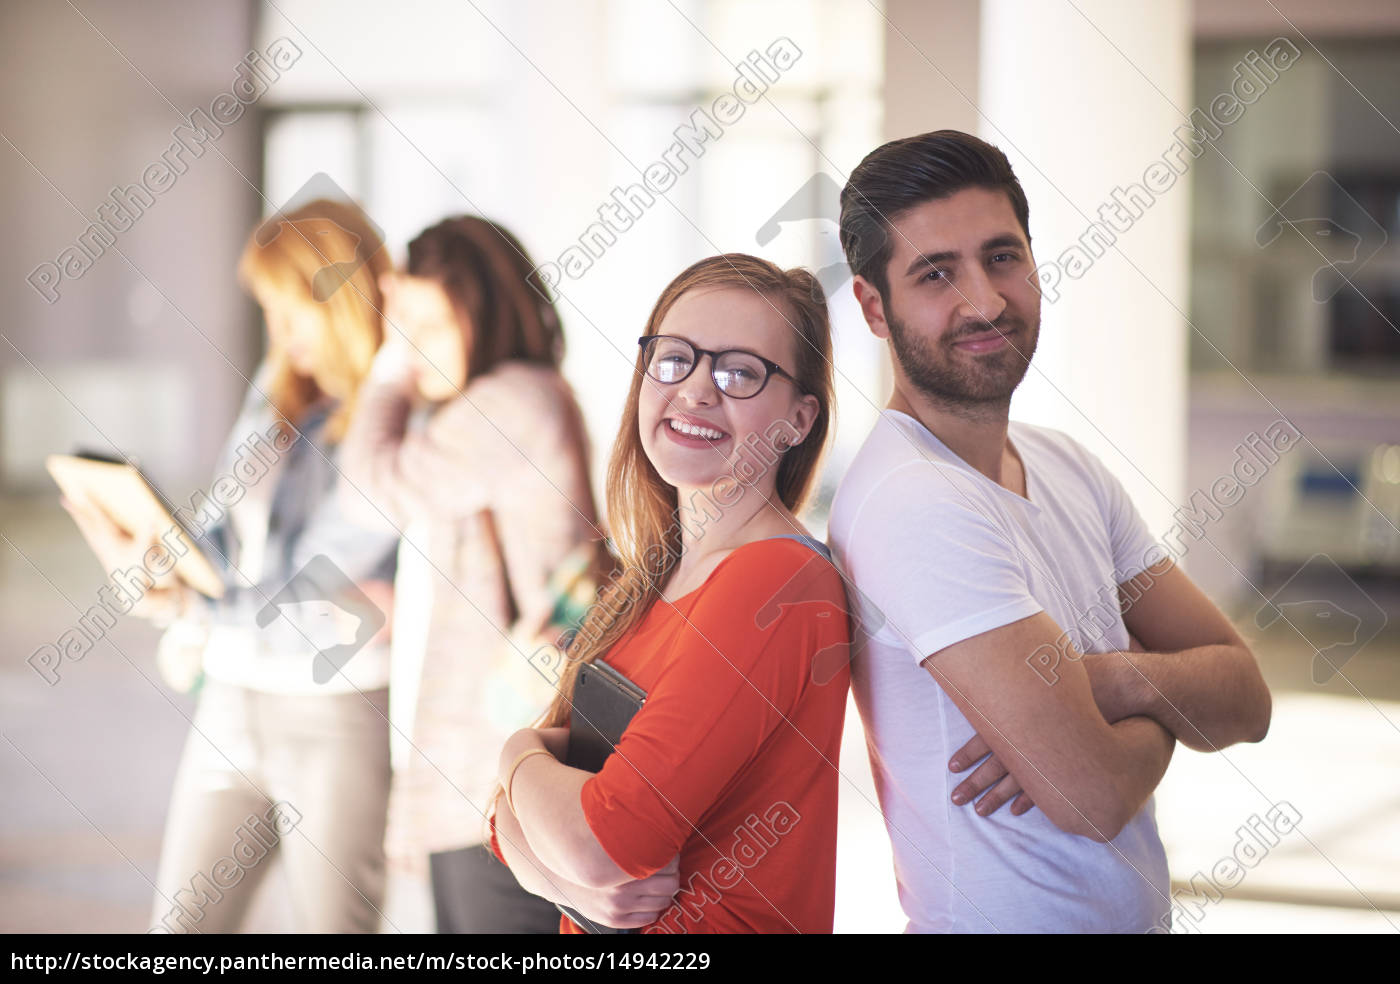 students, couple, standing, together - 14942229